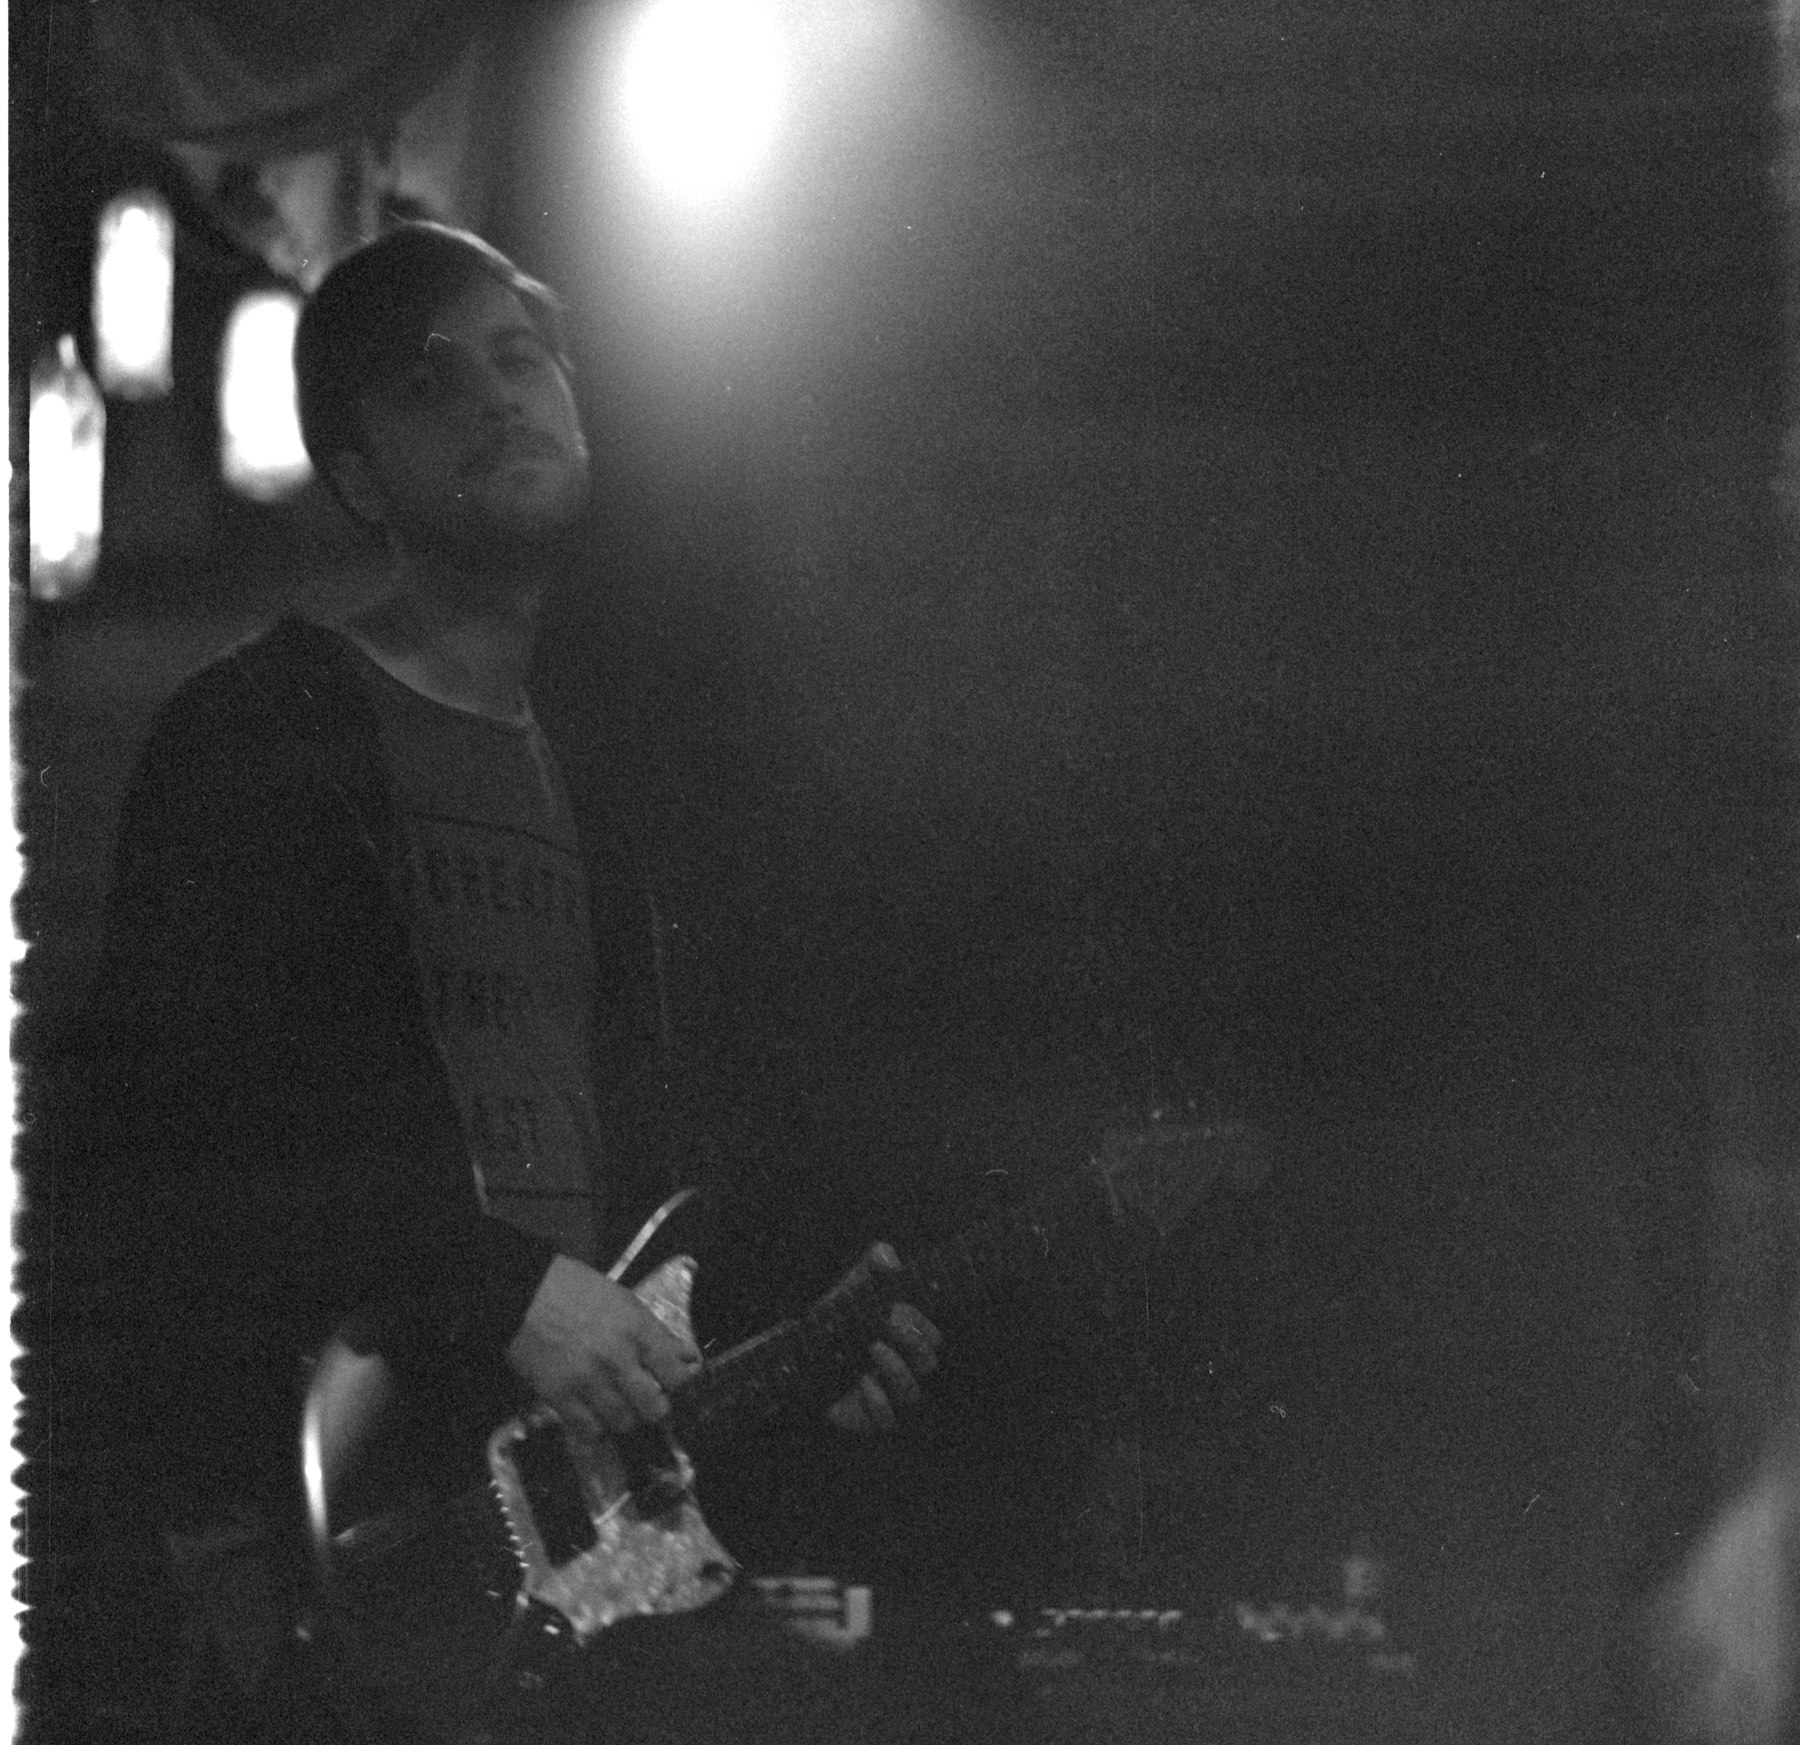 film, concert, black, white, scene, bulgaria, rock, bank, guitar, Evgeny Ivanov